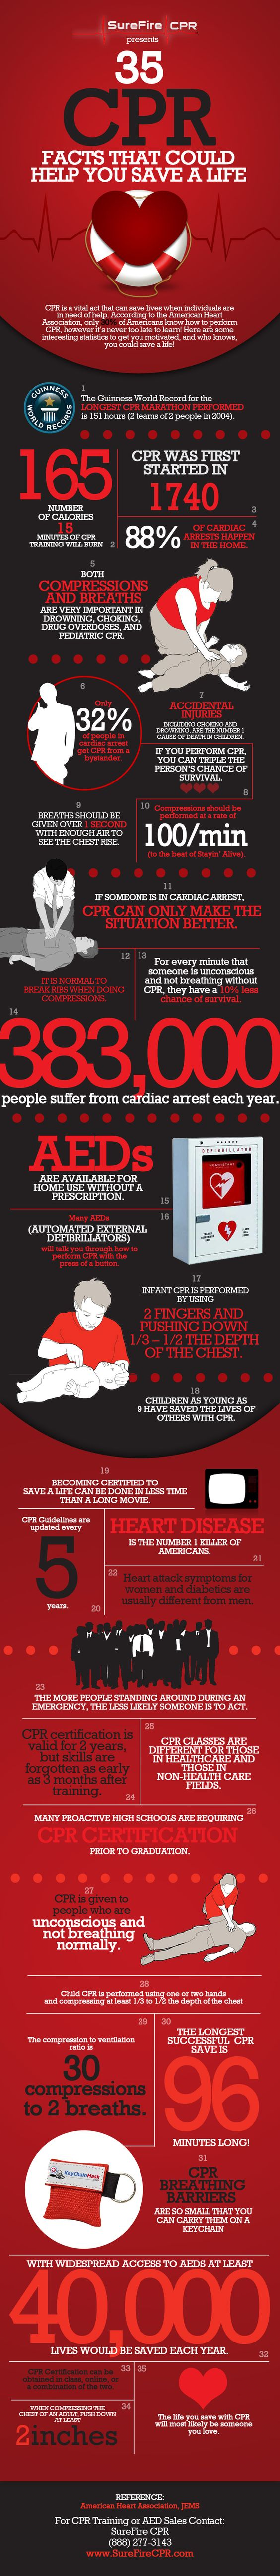 Looking for some CPR Facts that could help you save a life? Check us out at SureFireCPR.com!